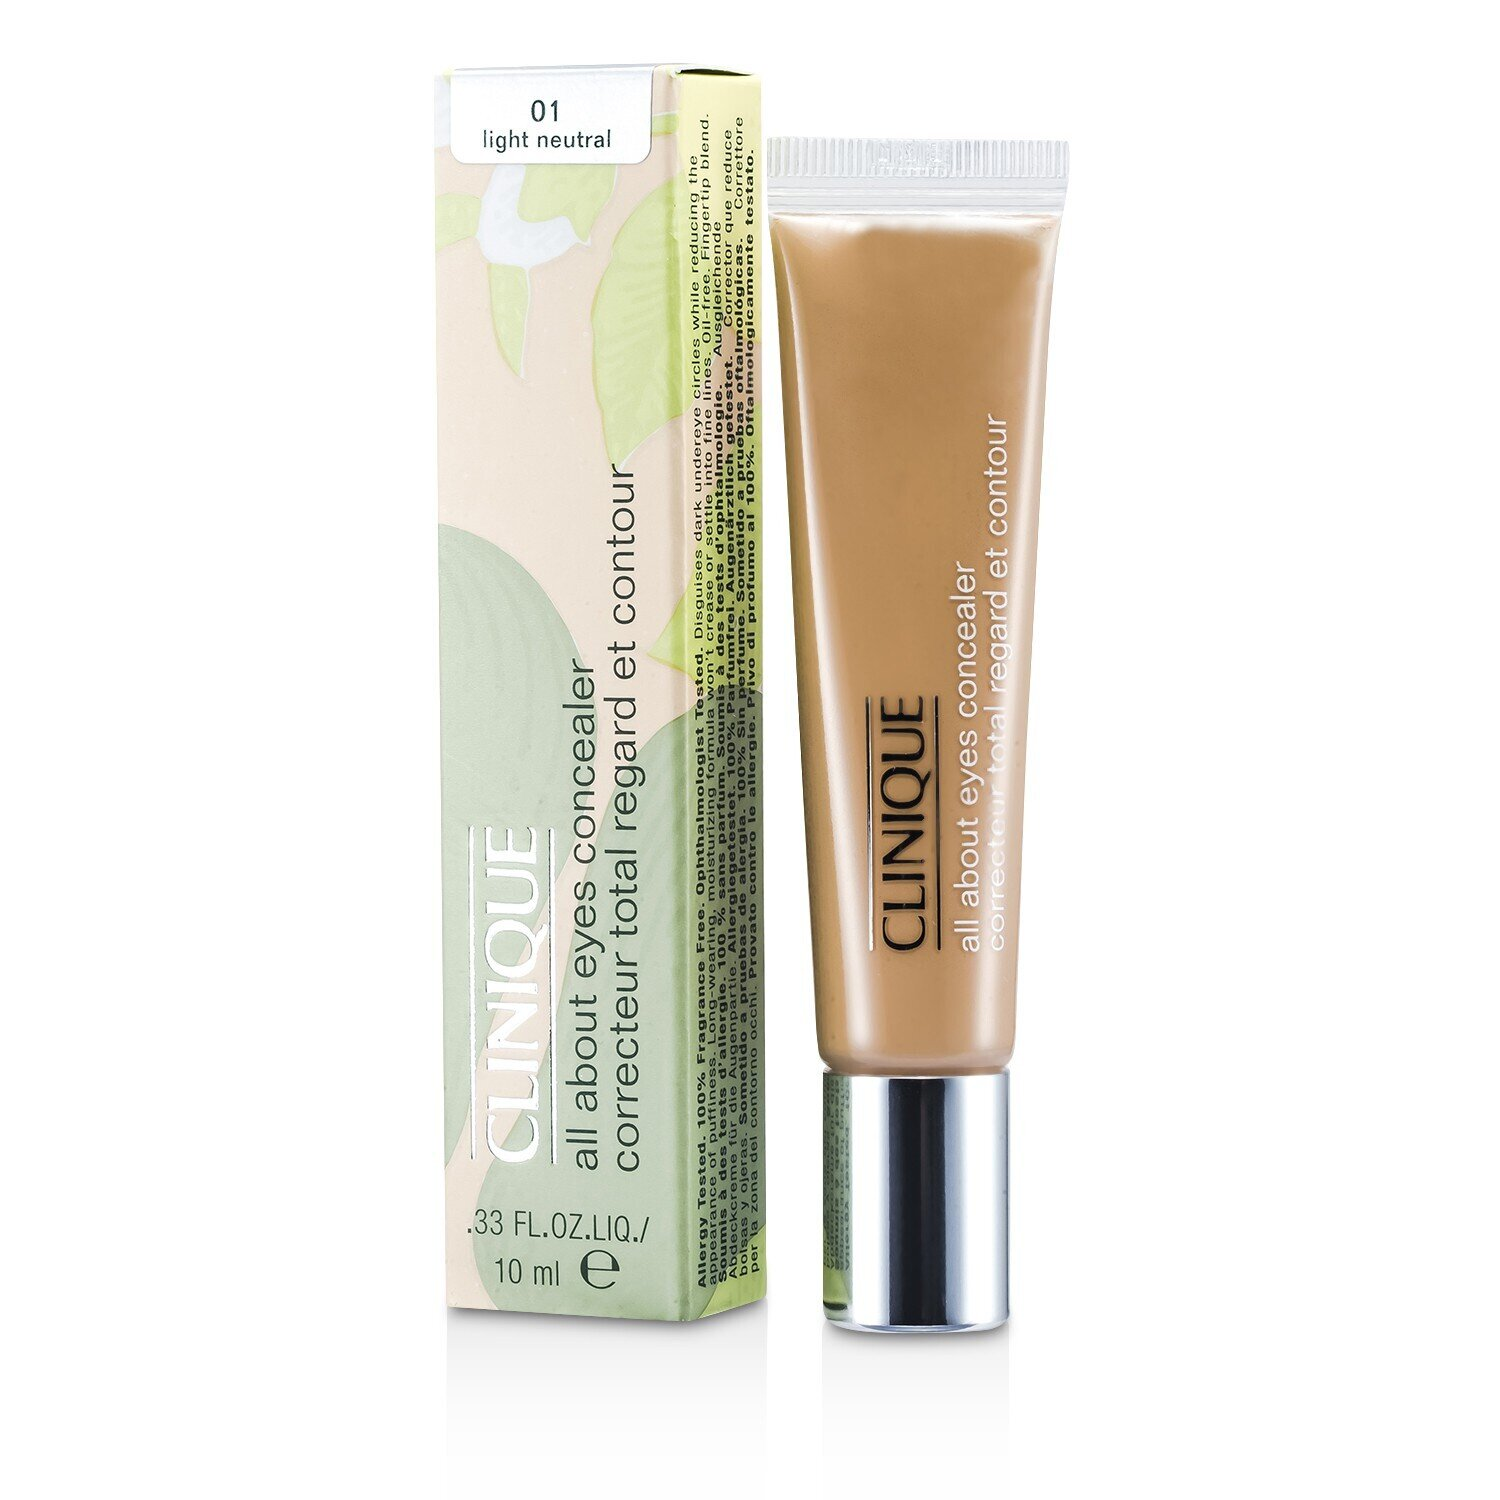 Clinique-All-About-Eyes-Concealer thumbnail 3